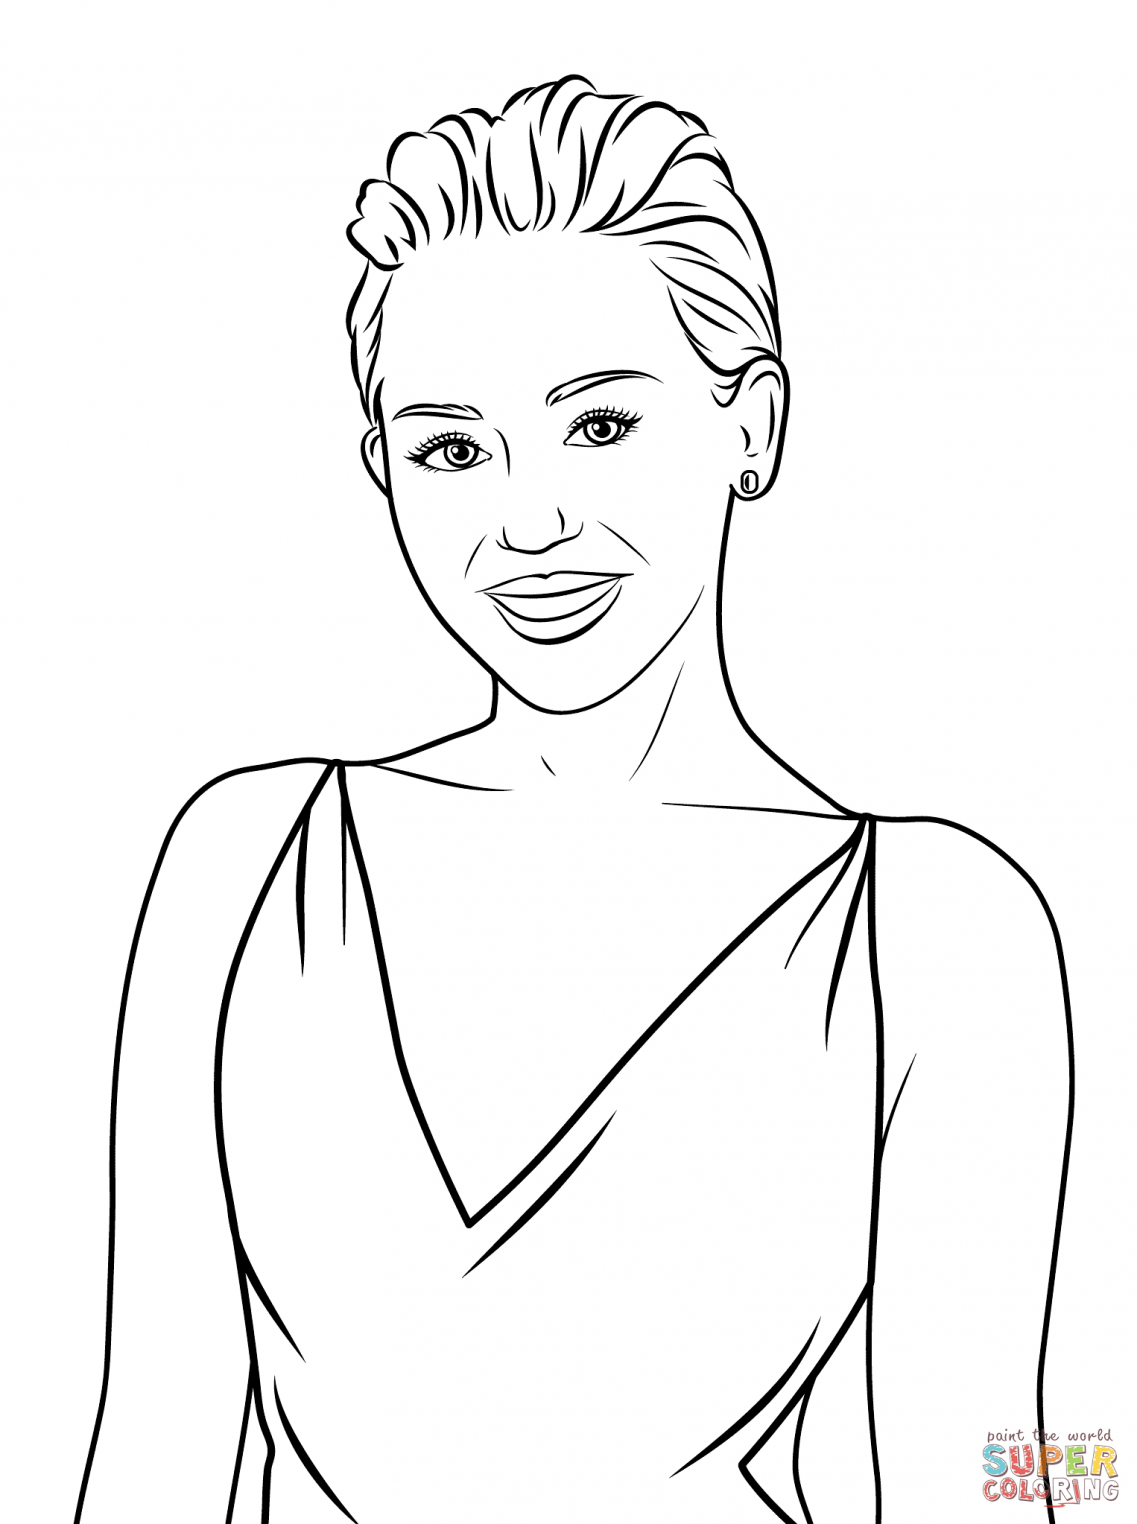 miley cyrus coloring pages Free